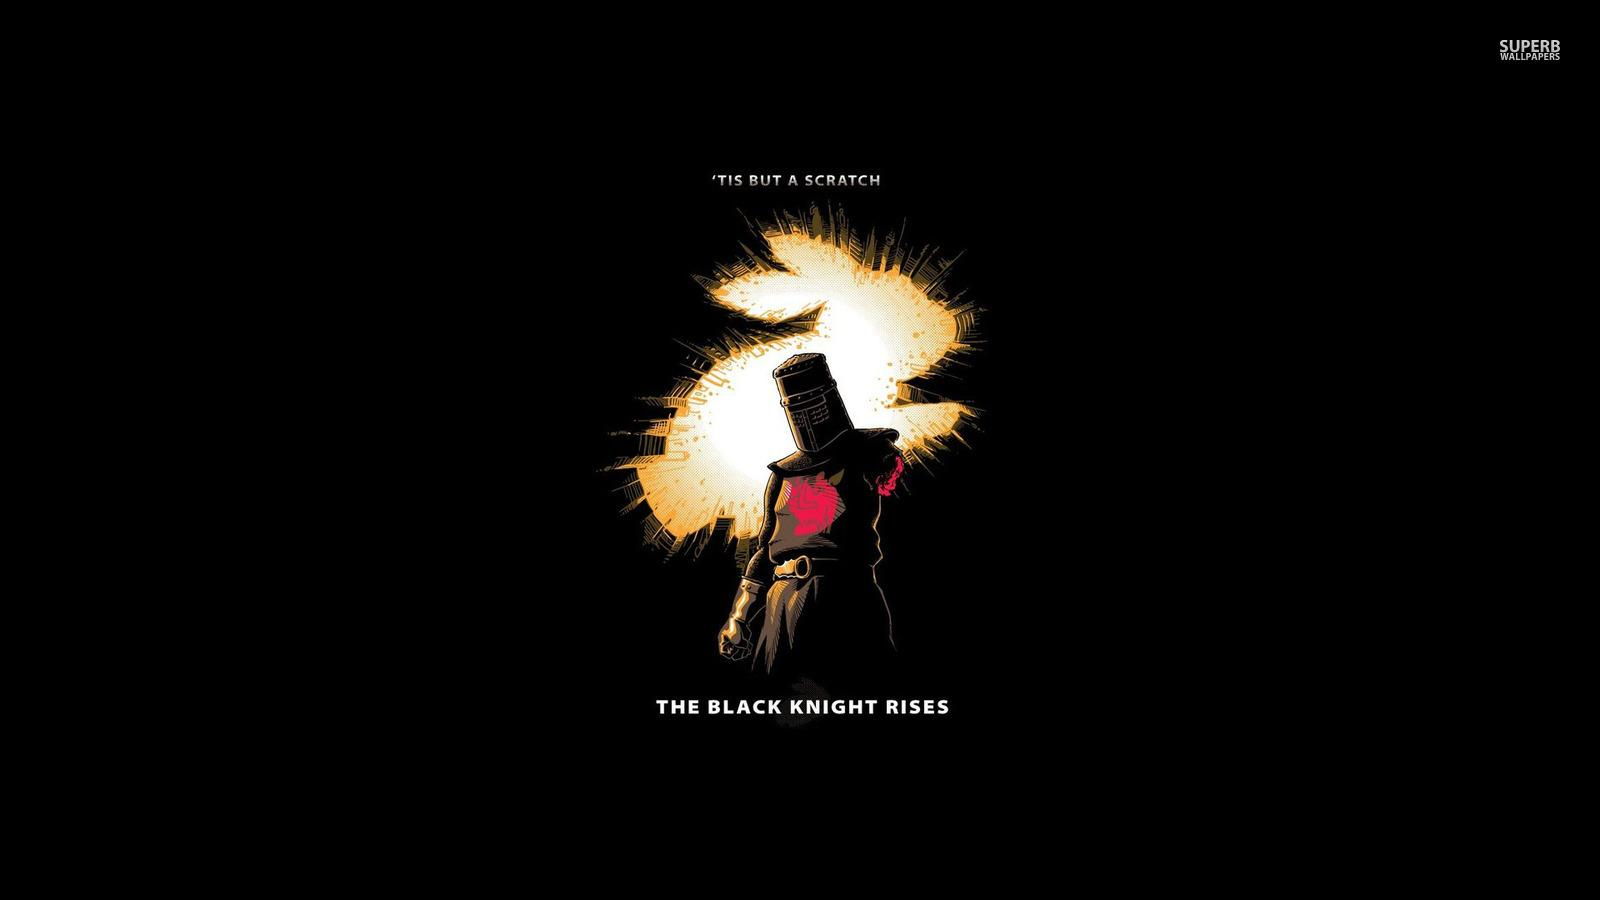 Monty Python and The Holy Grail image The Black Knight Rises HD